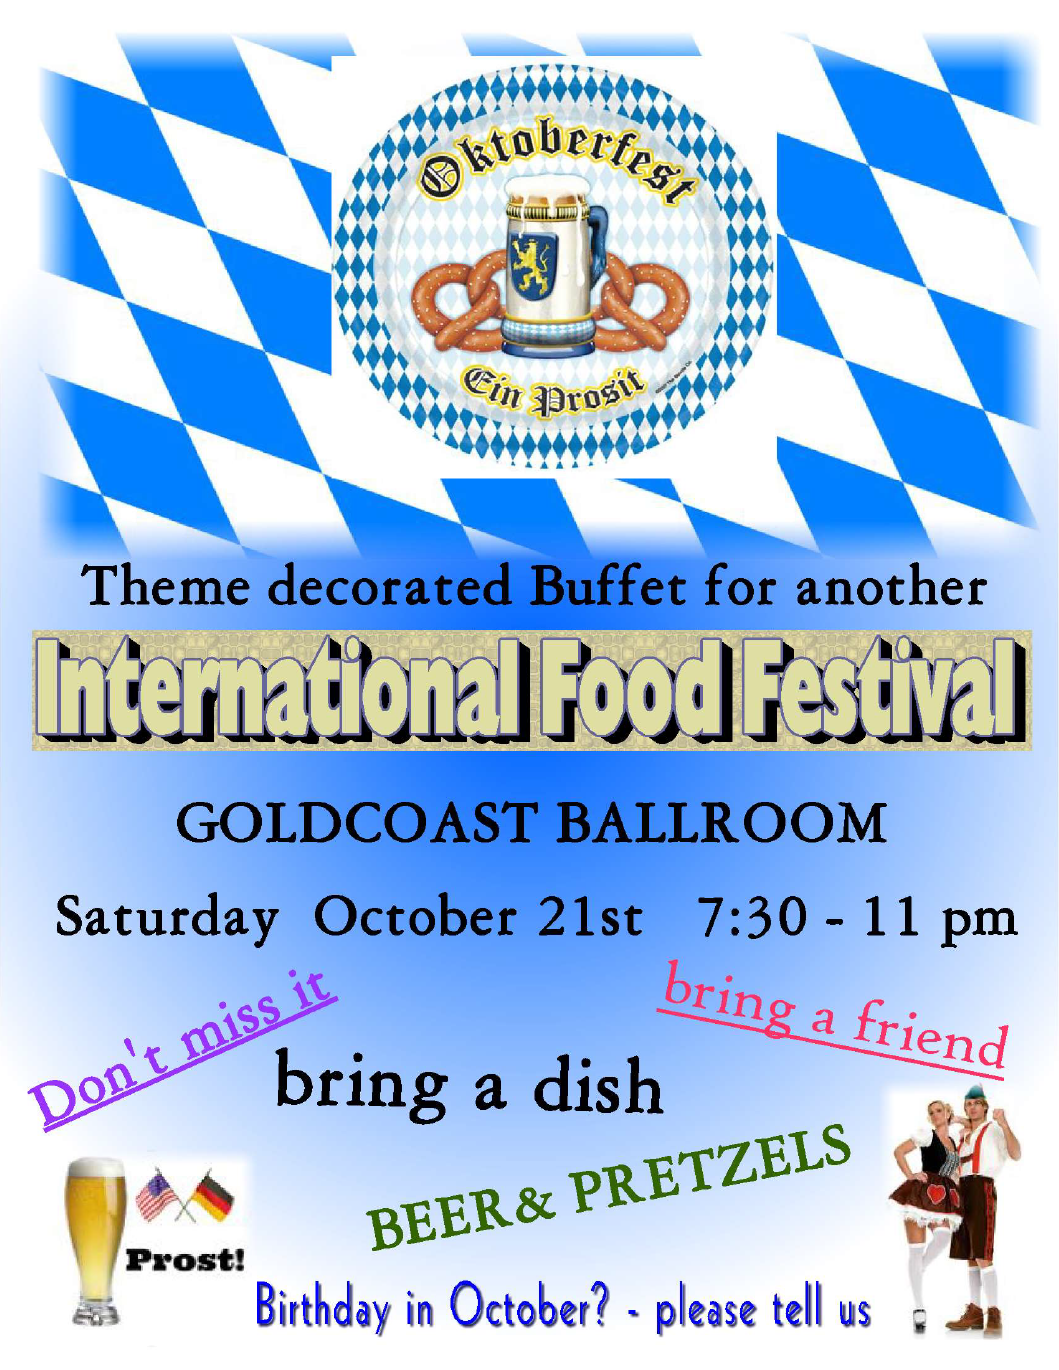 Octoberfest Buffet - Saturday, October 21, 2017